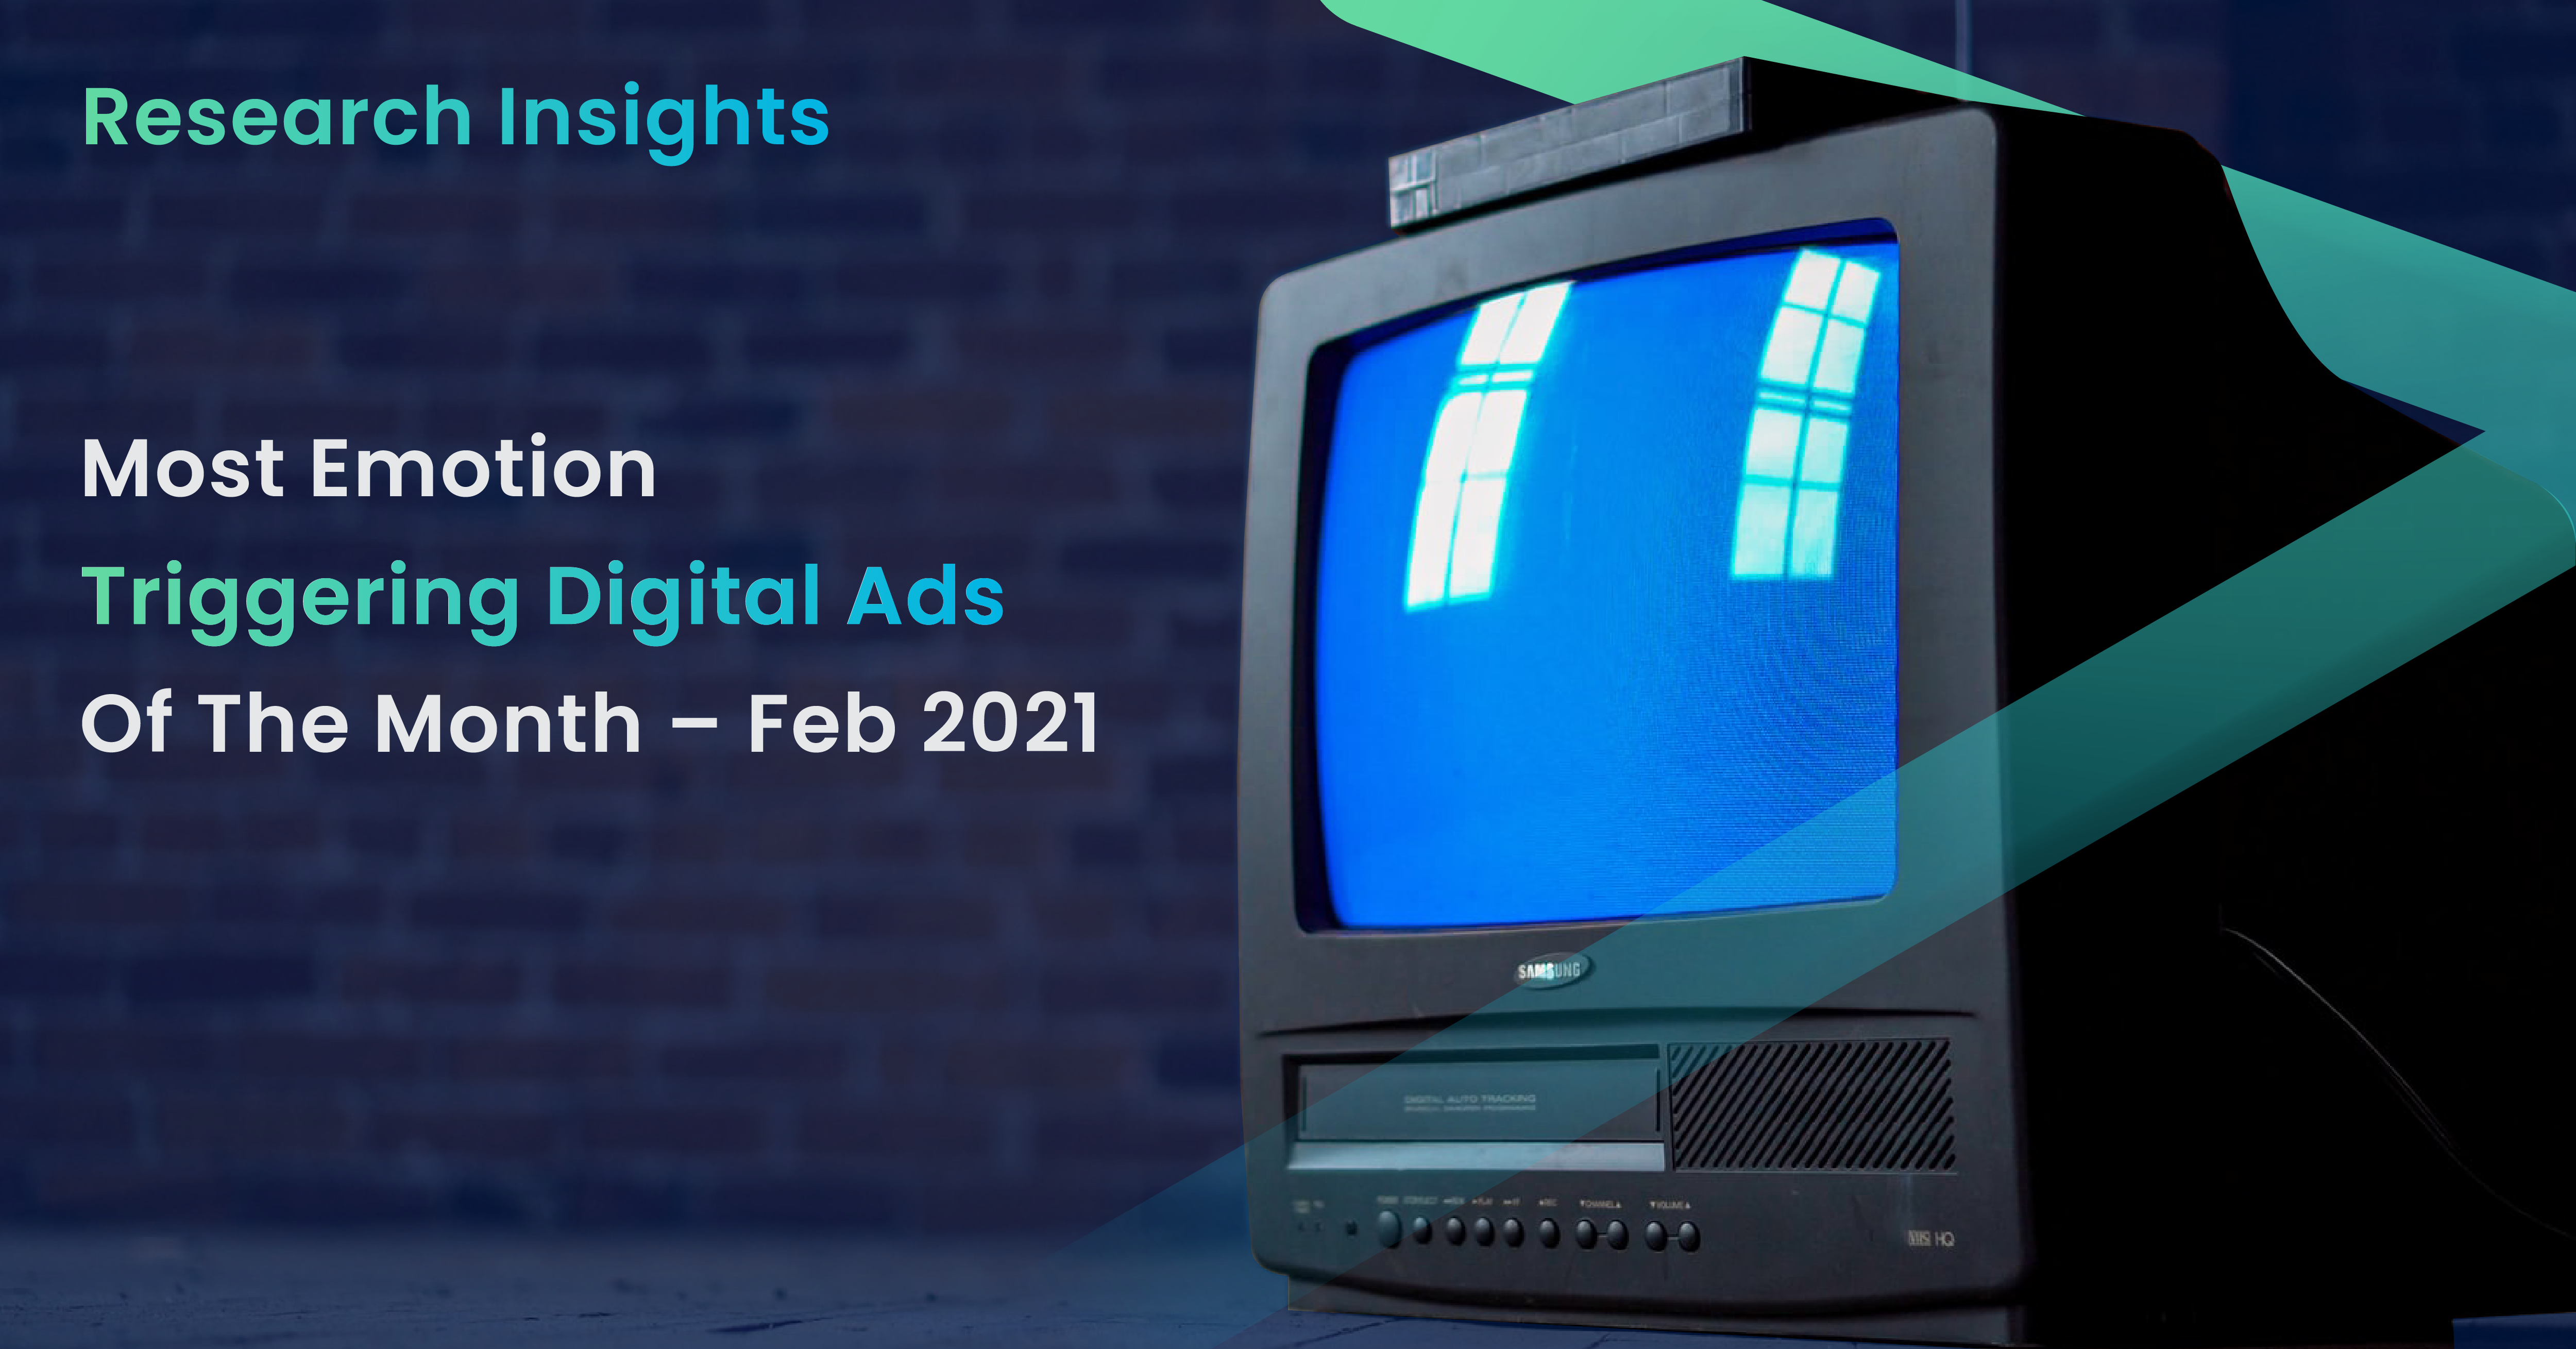 Most Emotion Triggering Digital Ads Of the Month- Feb 2021